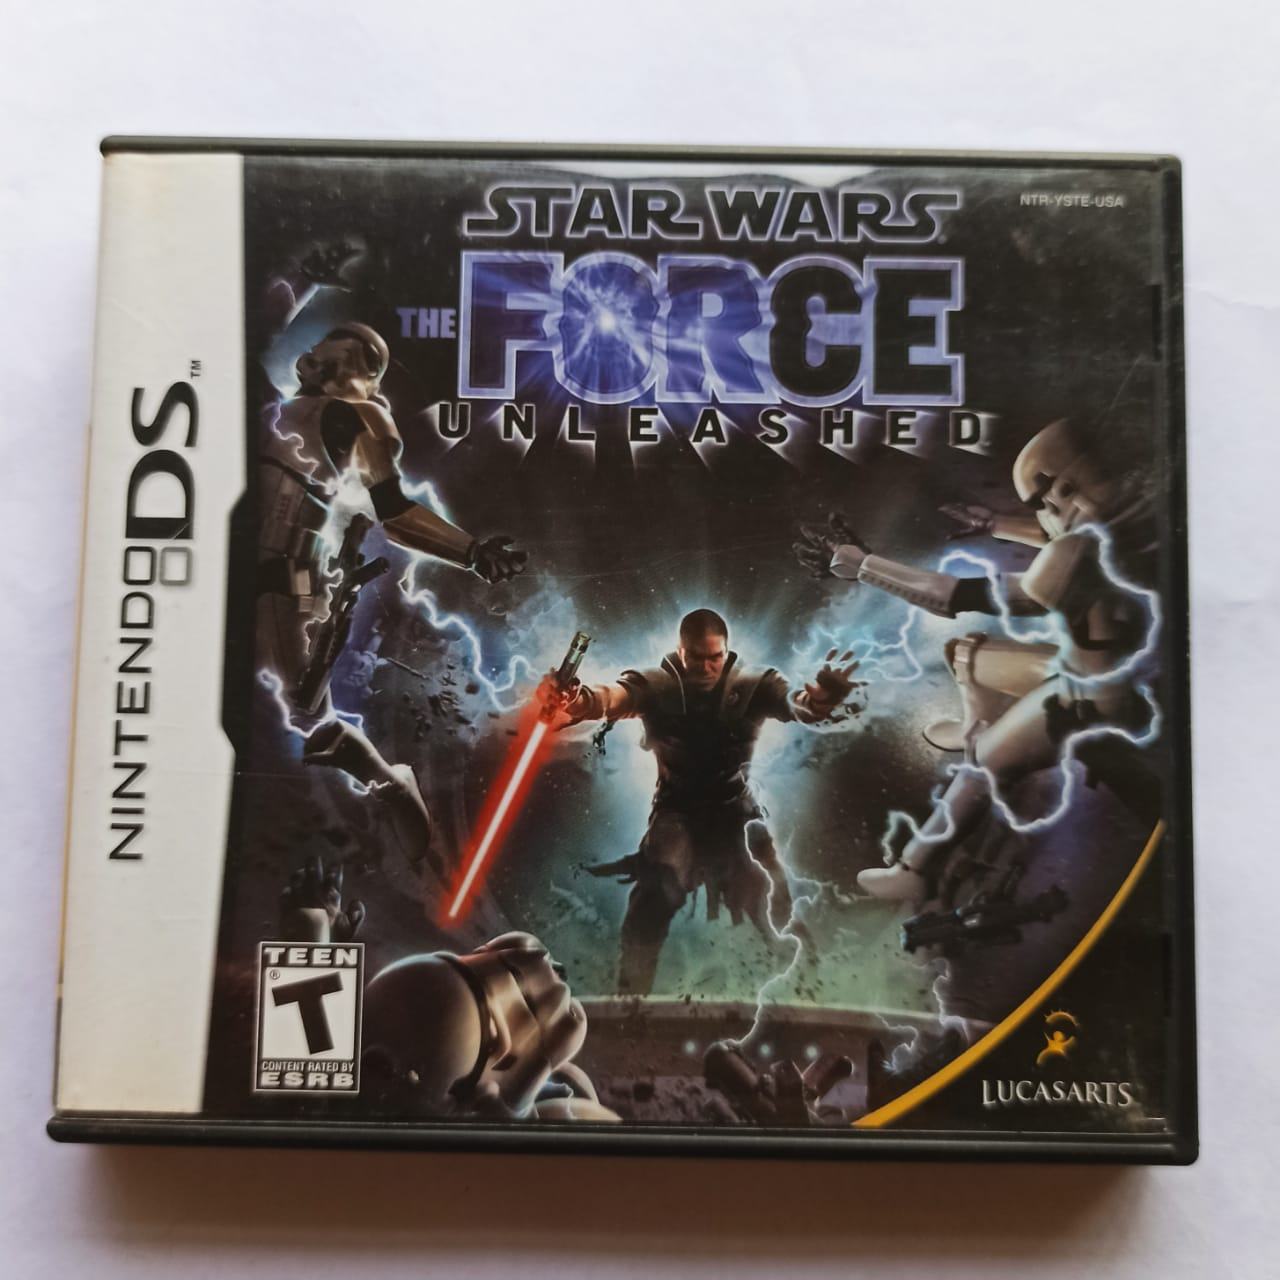 Star Wars: The Force Unleashed - USADO - Nintendo DS